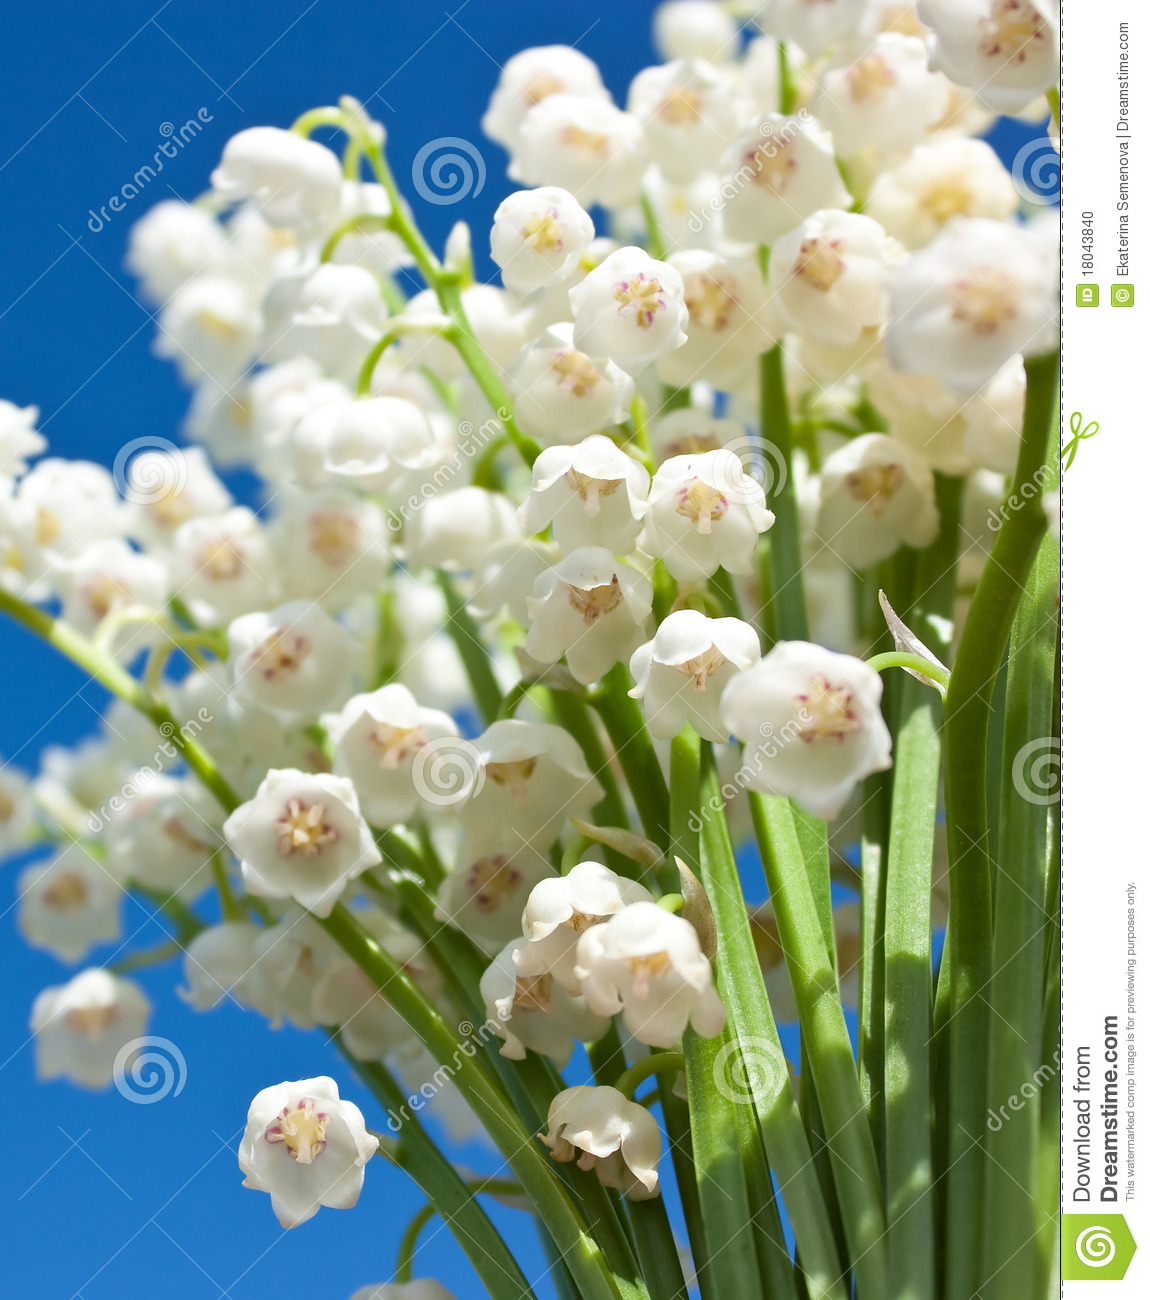 Beautiful lily of the valley flowers stock photo image of april beautiful lily of the valley flowers izmirmasajfo